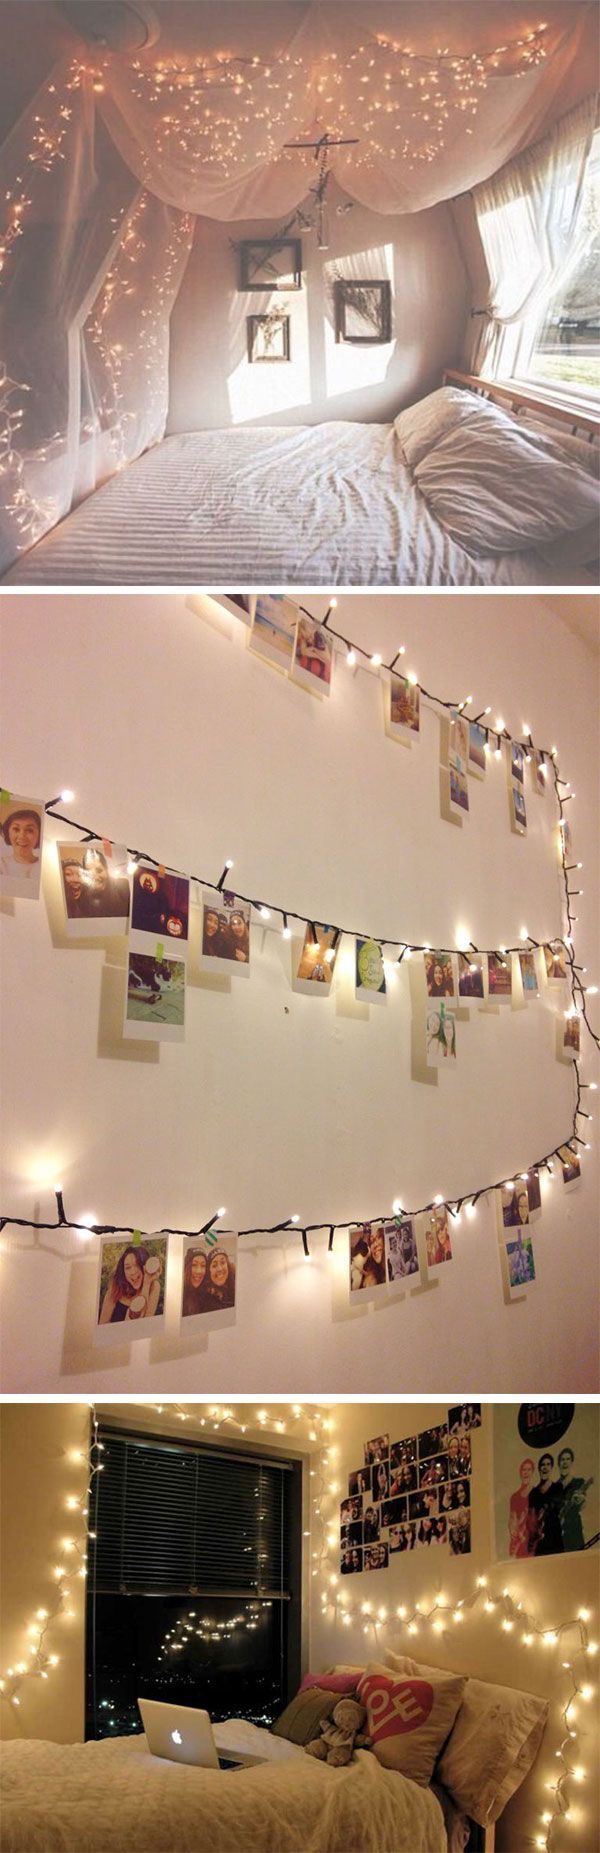 13 ways to use fairy lights to make your home look magical - Ways To Decorate A Bedroom